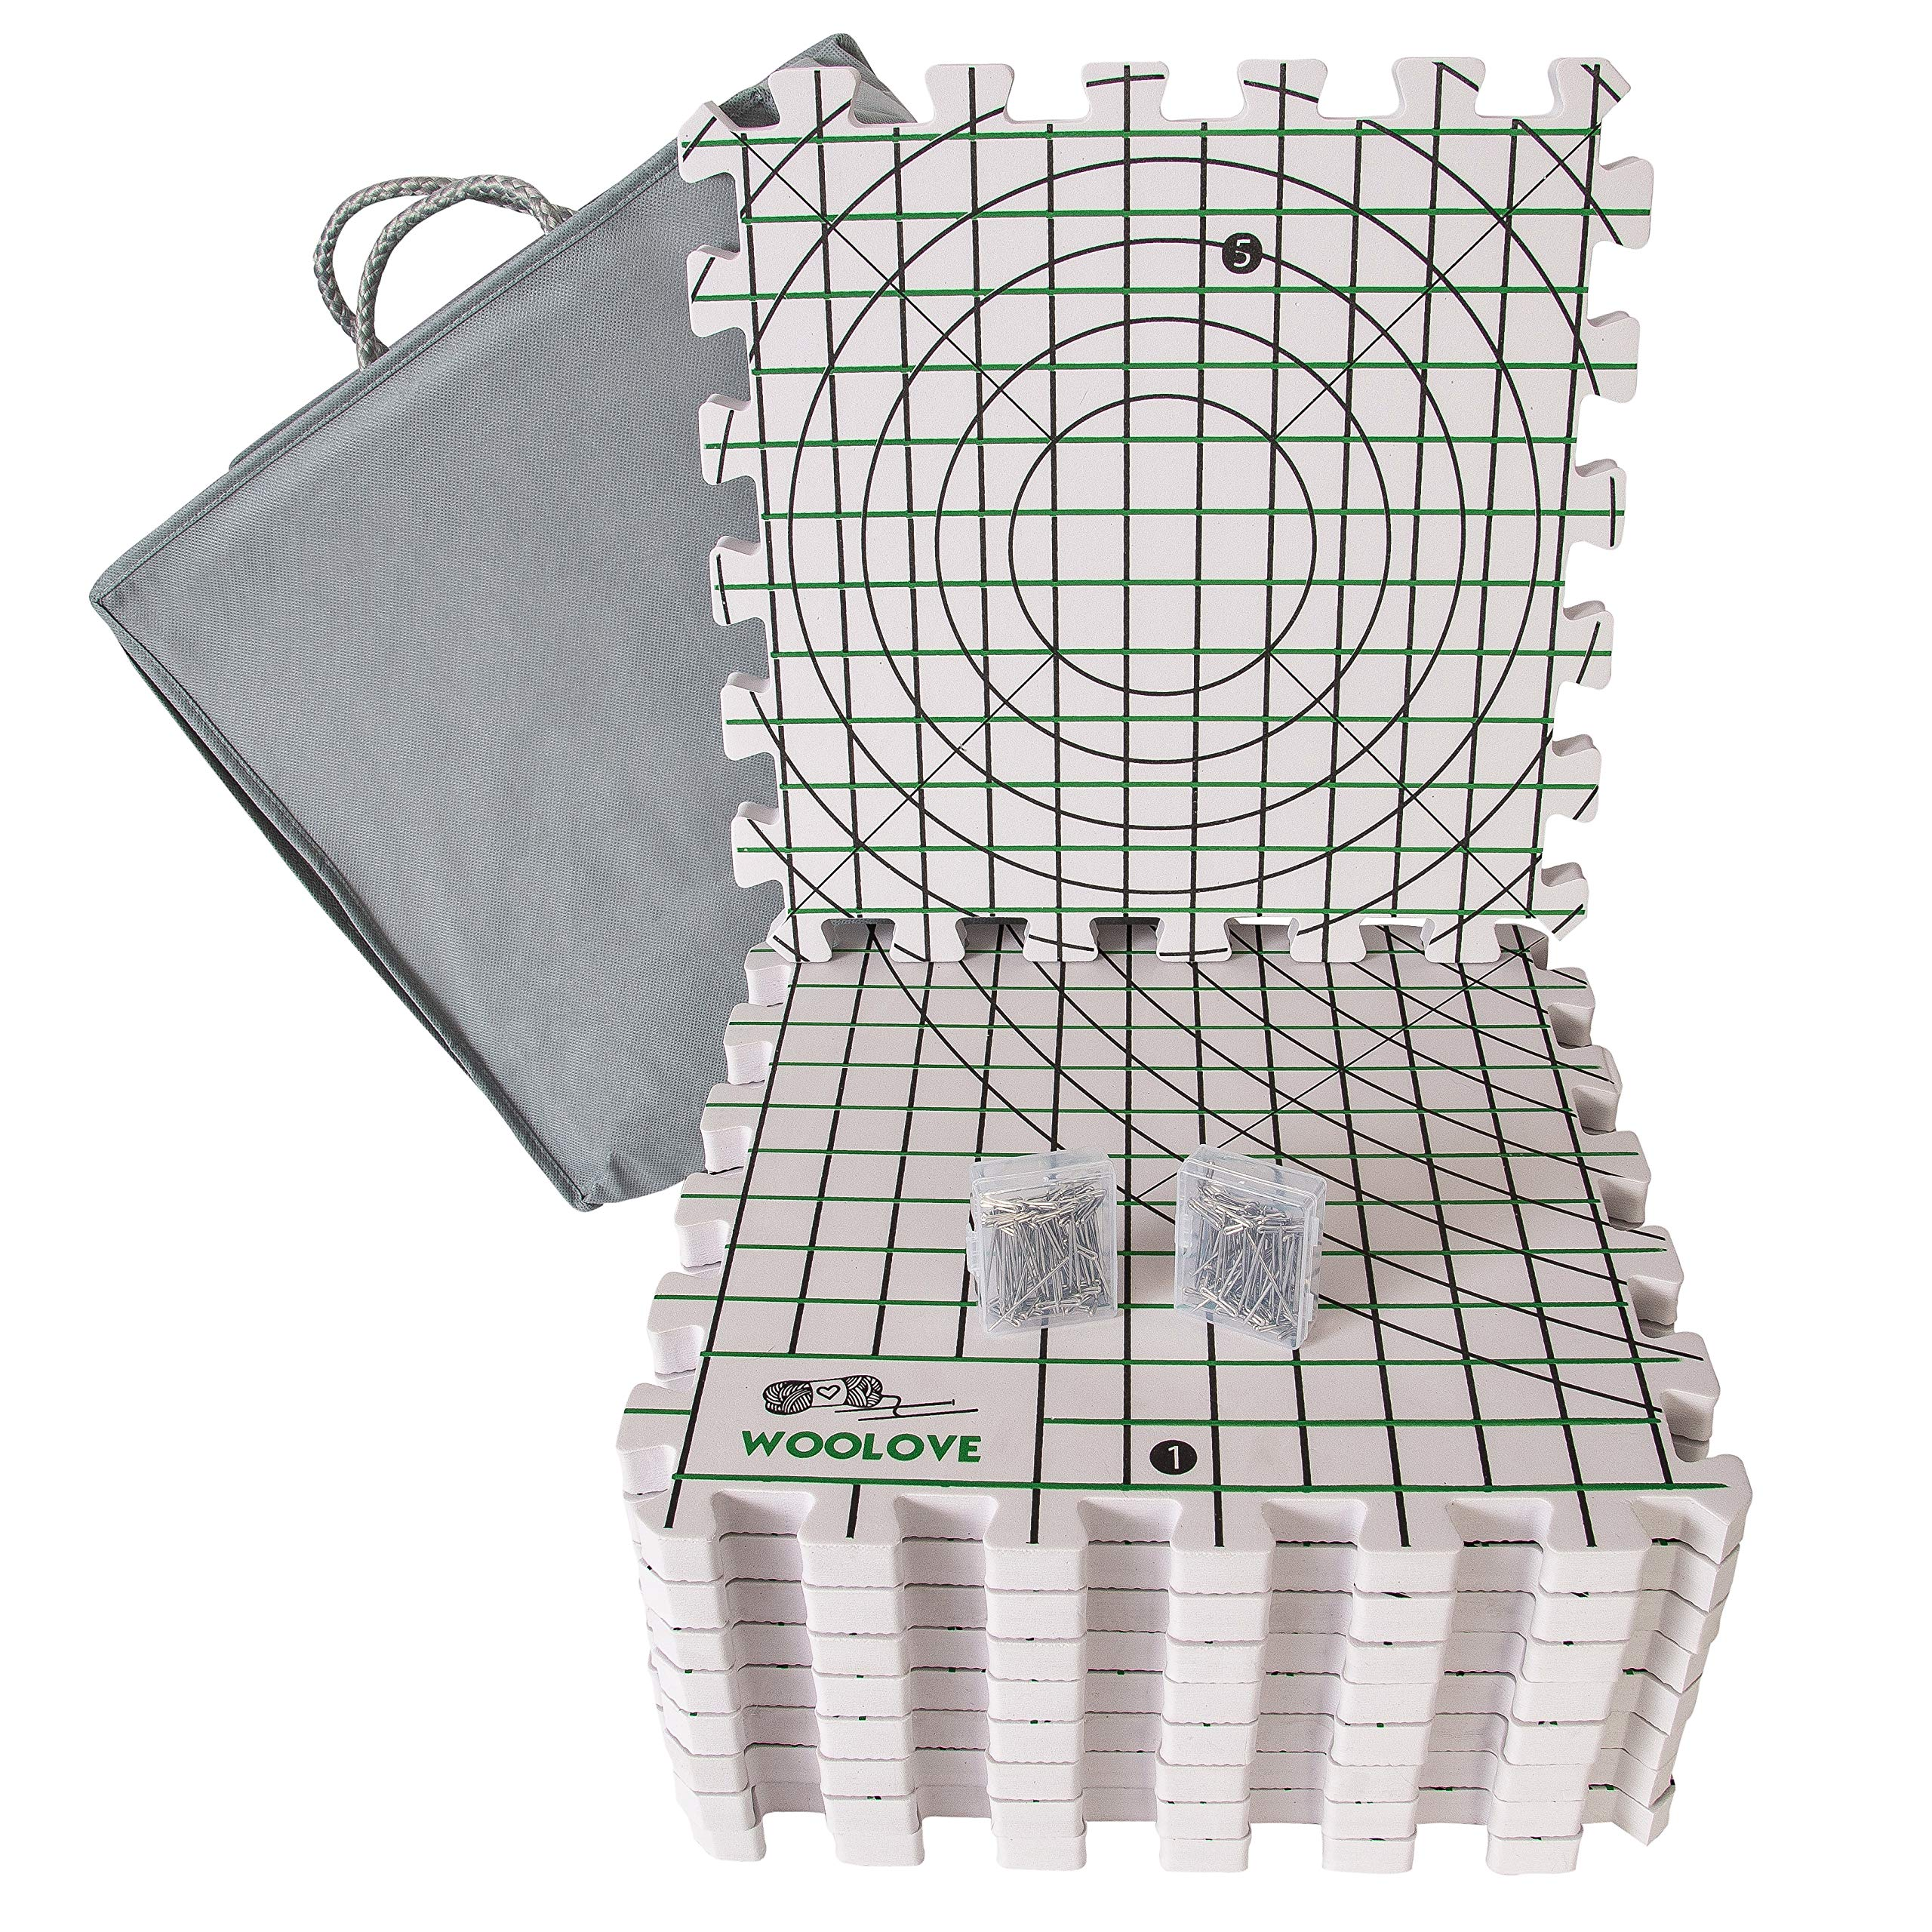 Extra Thick Blocking Mats for Wet and Steam Blocking with Grids and Radial Circles - Set of 9 Marked with Numbers Includes 100 t pins and Storage Bag by WOOLOVE (Image #1)